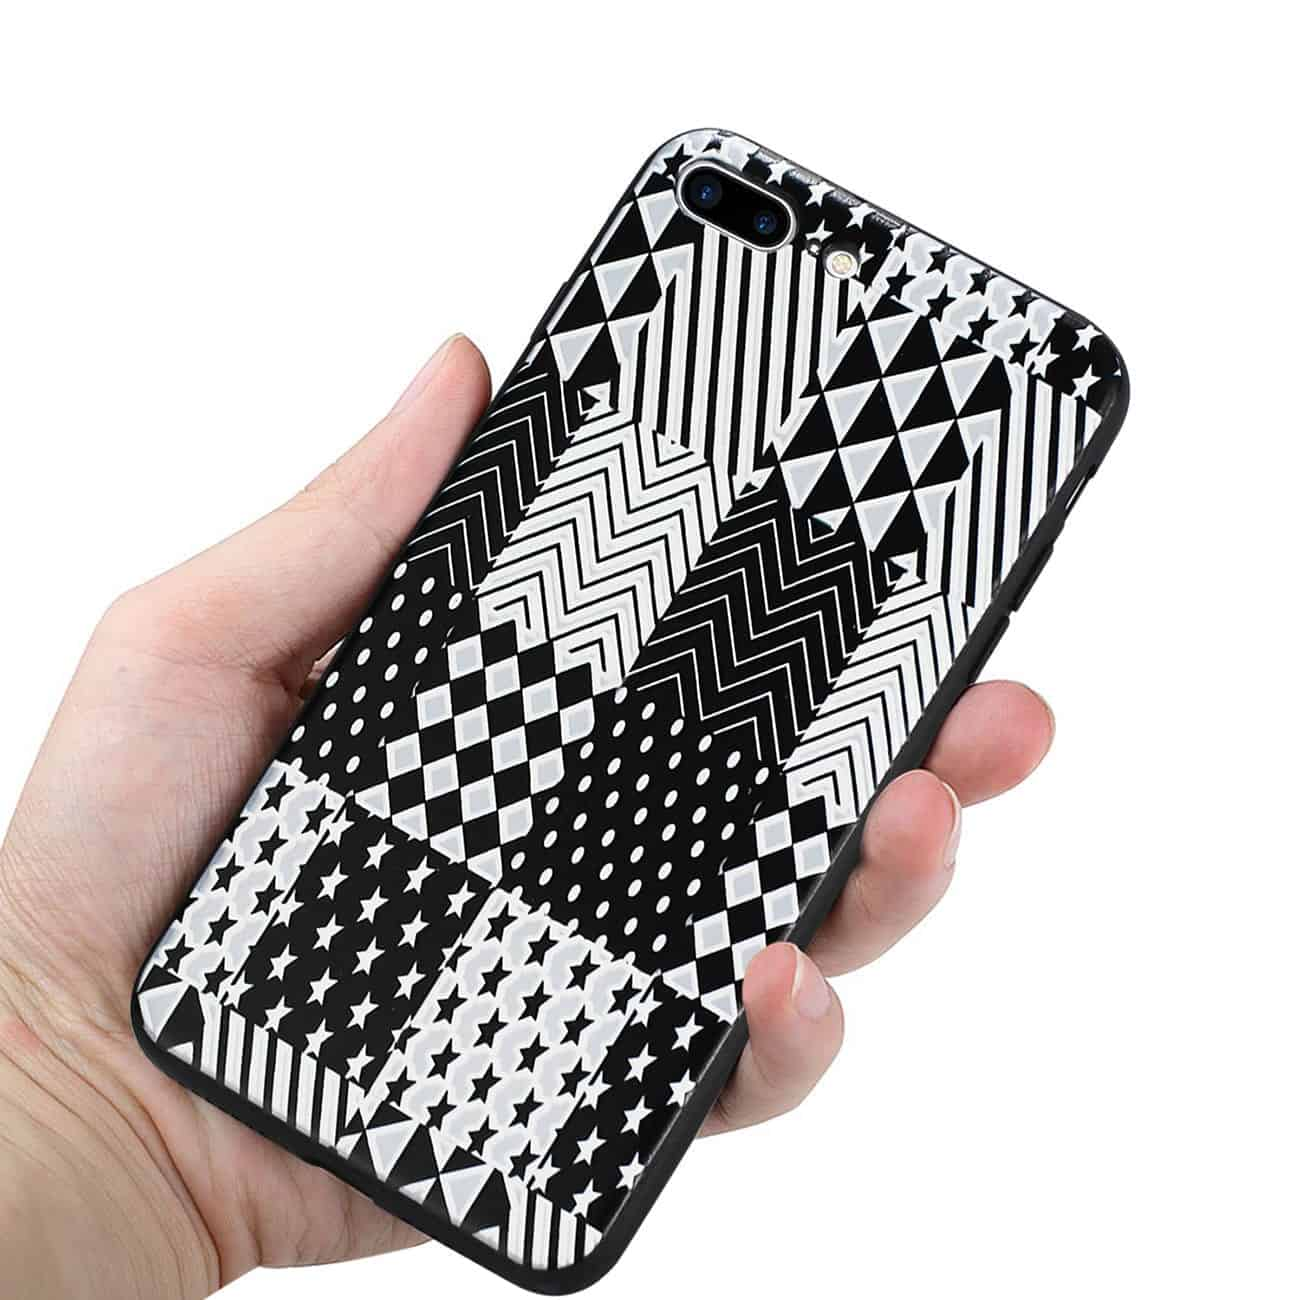 IPHONE 7 PLUS DESIGN TPU CASE WITH VERSATILE SHAPE PATTERNS